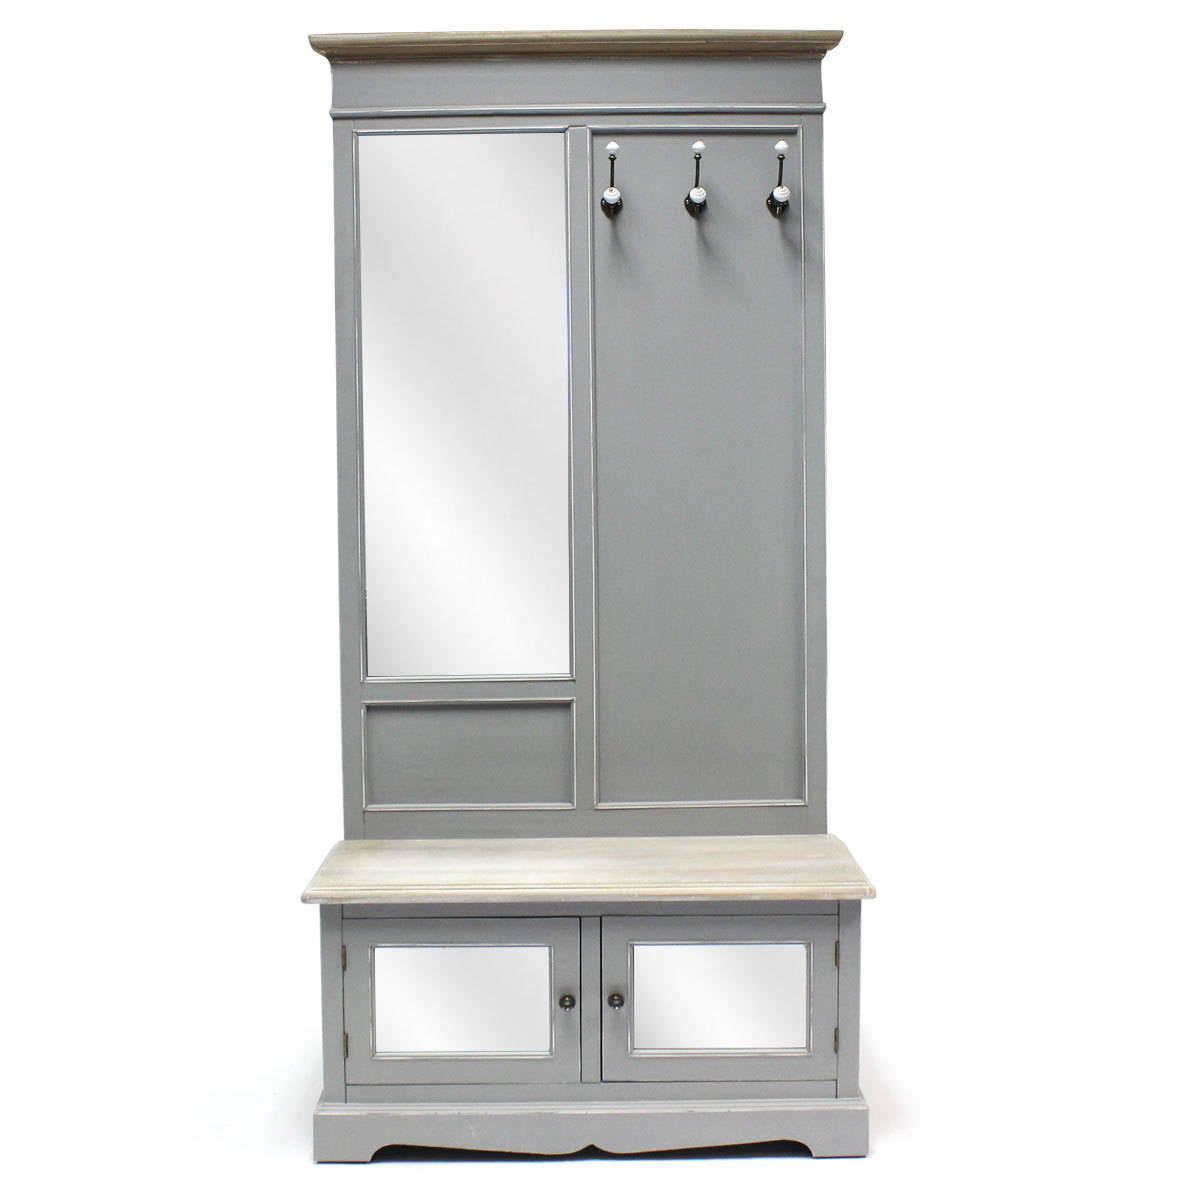 Best ideas about Hall Storage Cabinet . Save or Pin Bentley Home Grey Loxley Vintage Hallway Cabinet Storage Now.